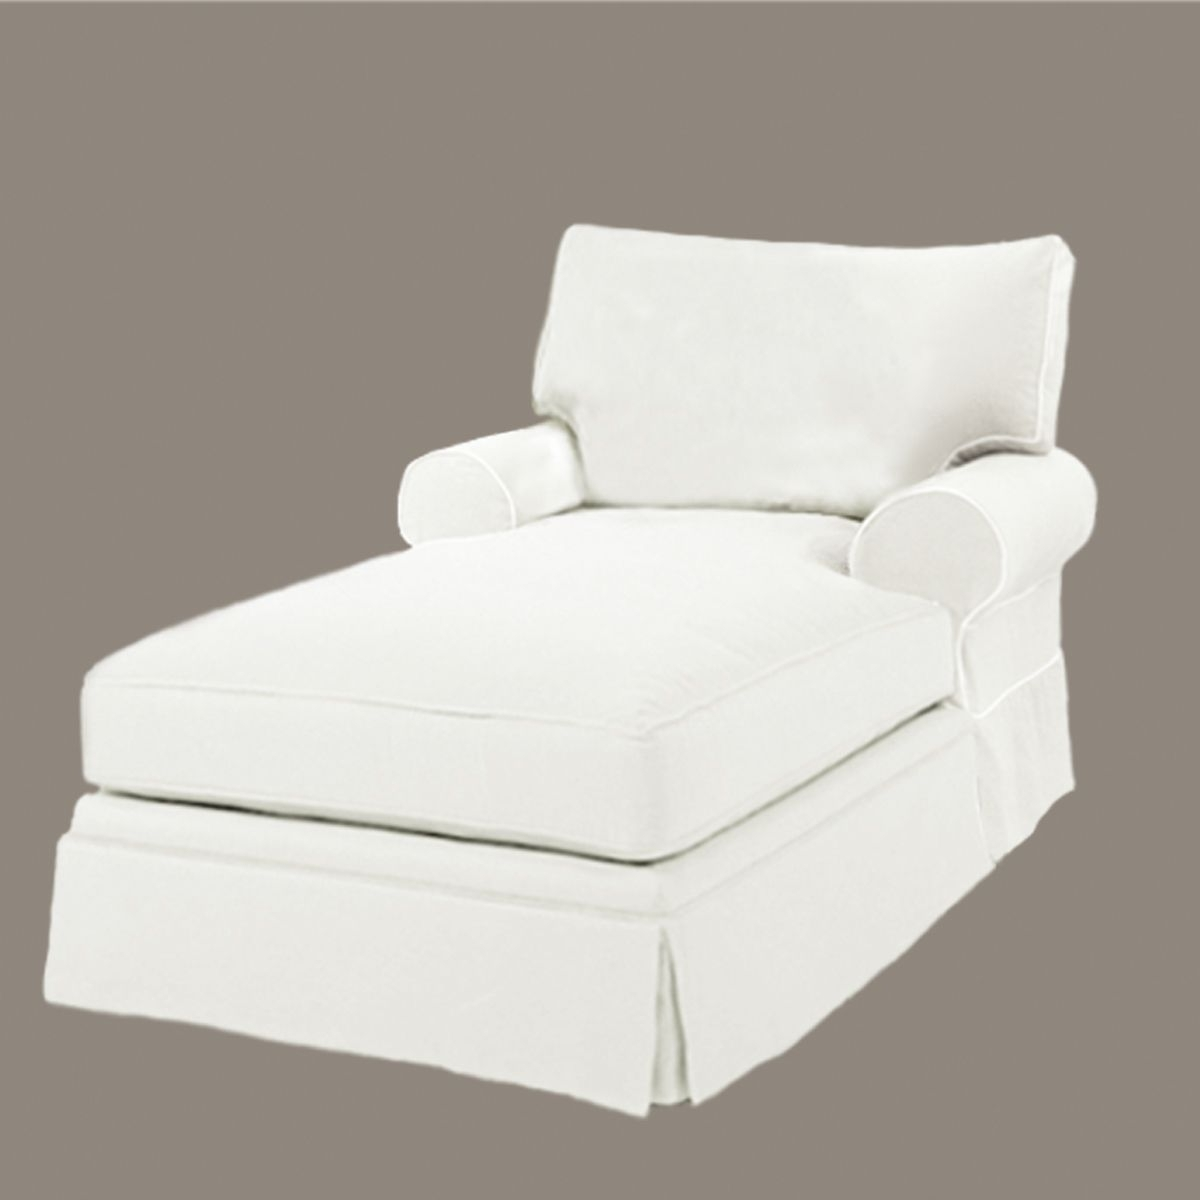 Indoor Chaise Lounge Chairs – Home Designs Ideas Online In Most Recent Chaise Lounge Chairs For Indoor (View 14 of 15)